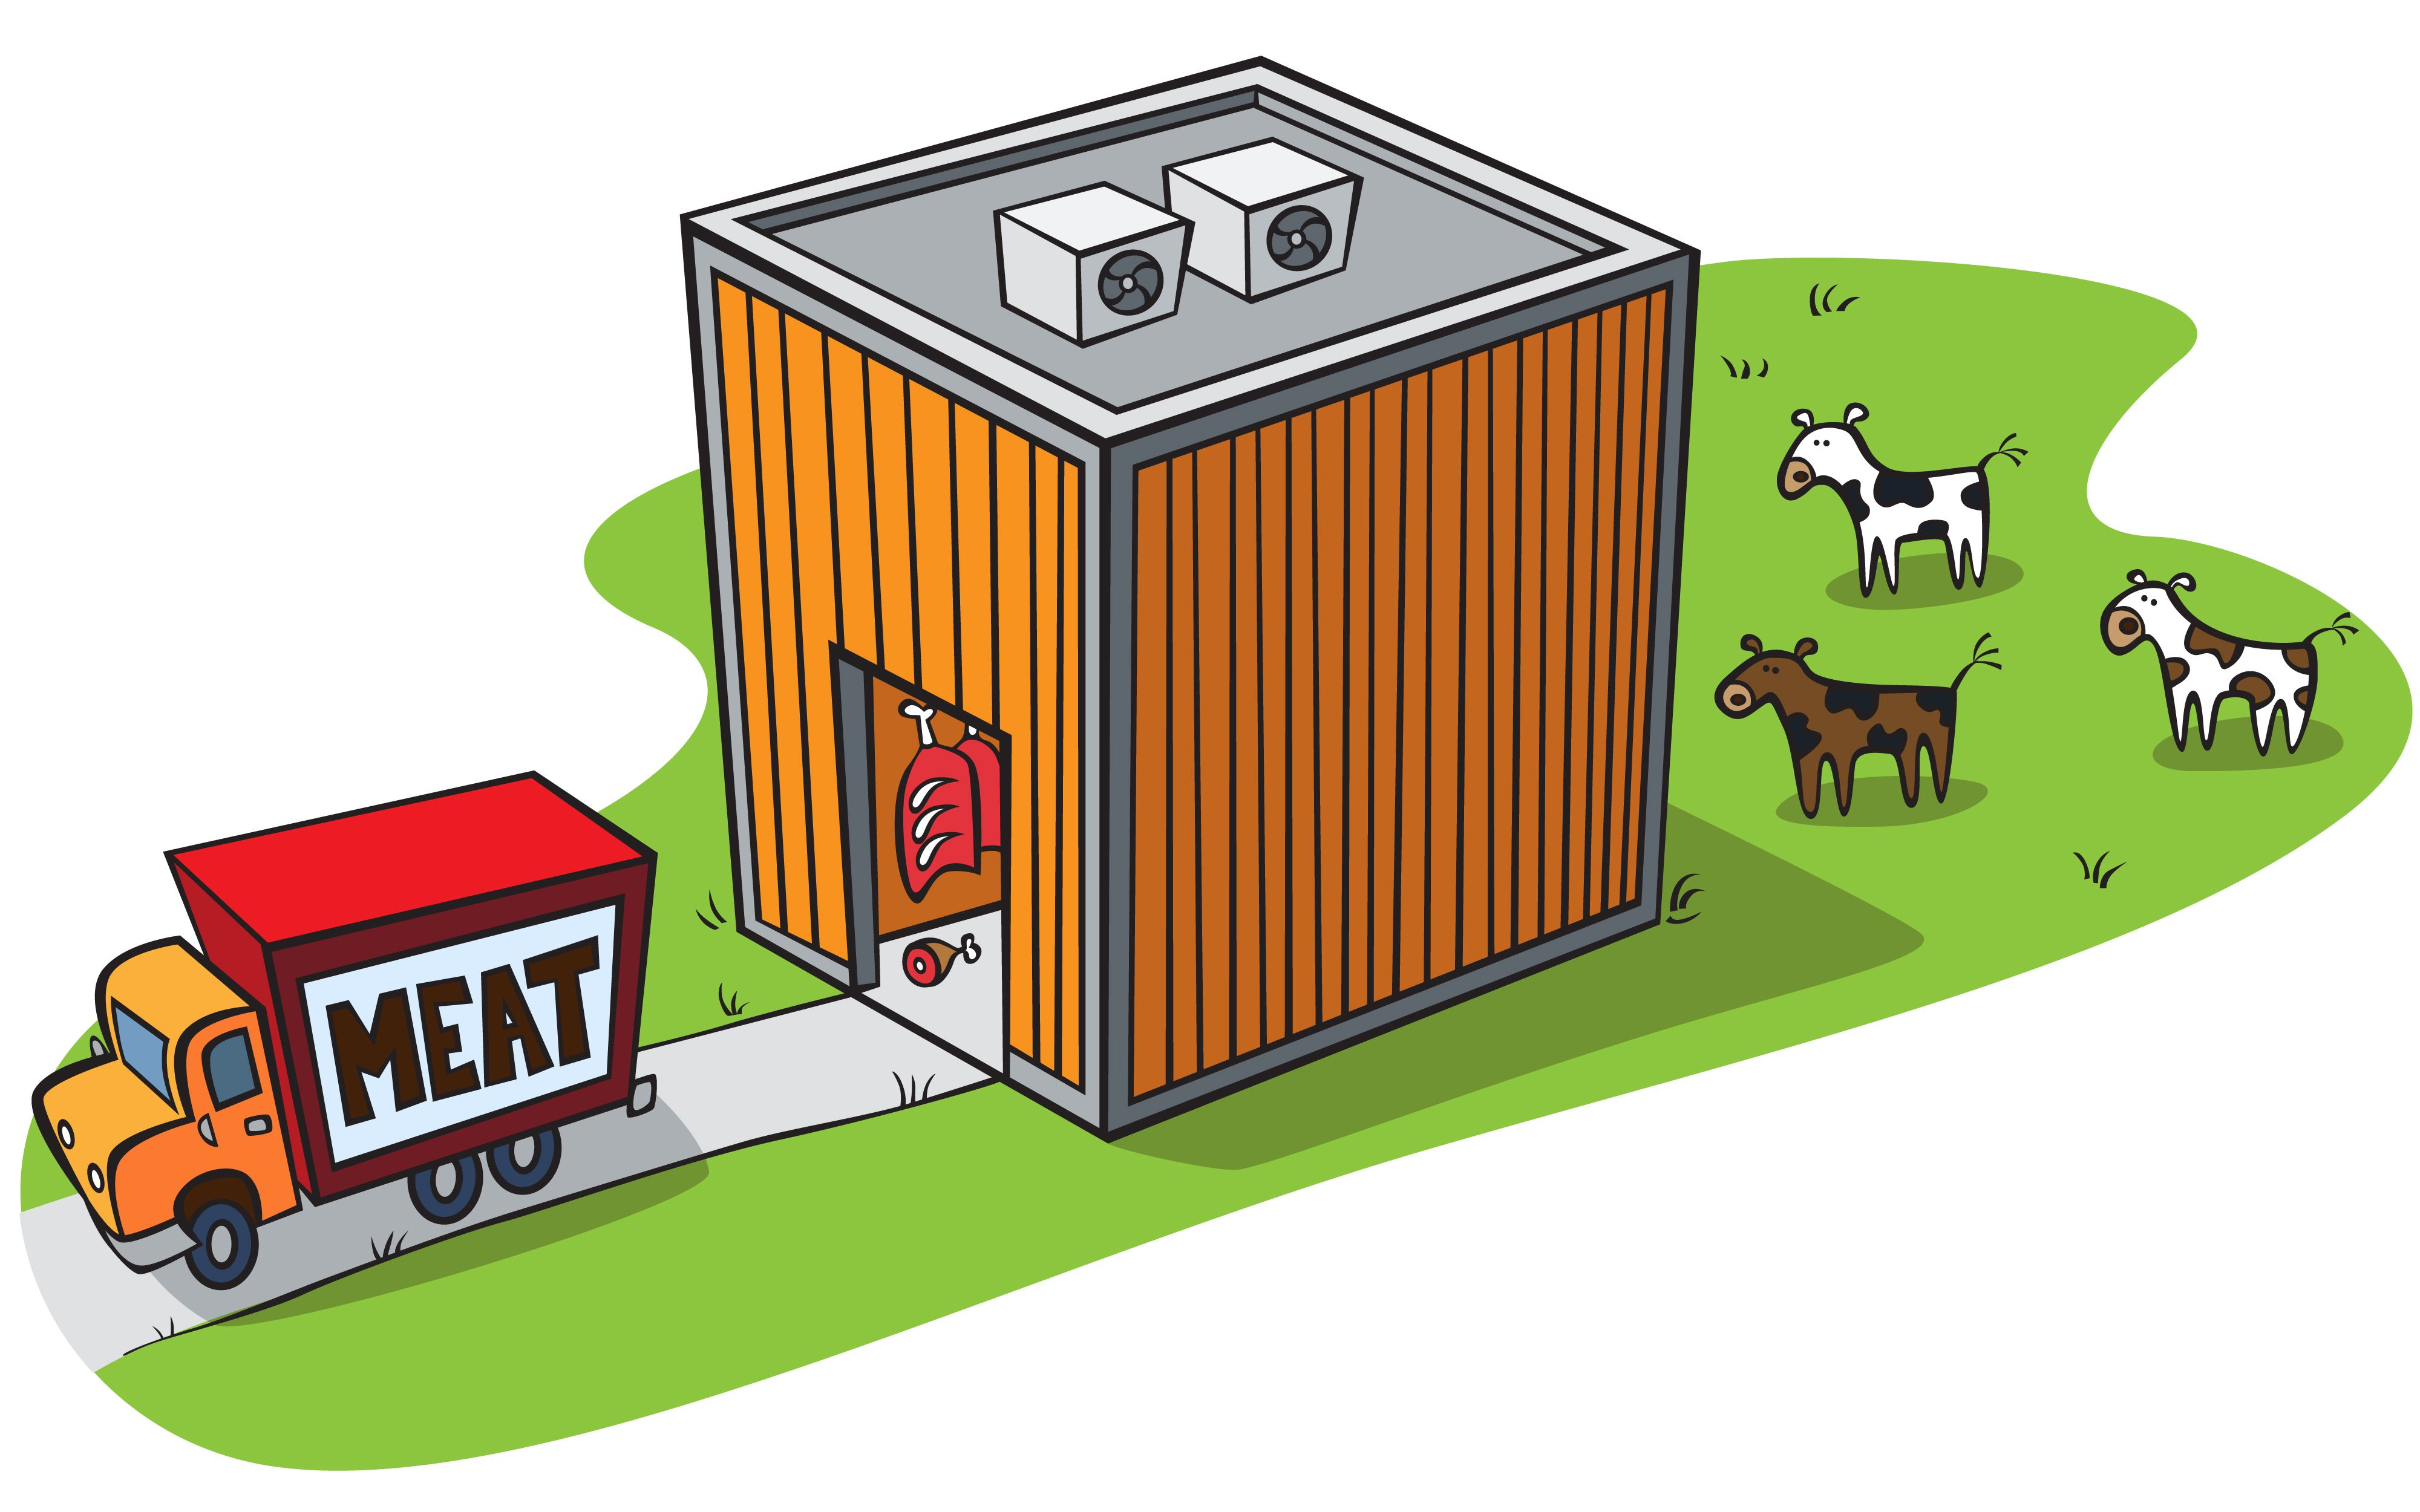 Factory clipart industrial shed. Awesome cartoon amazingpict com